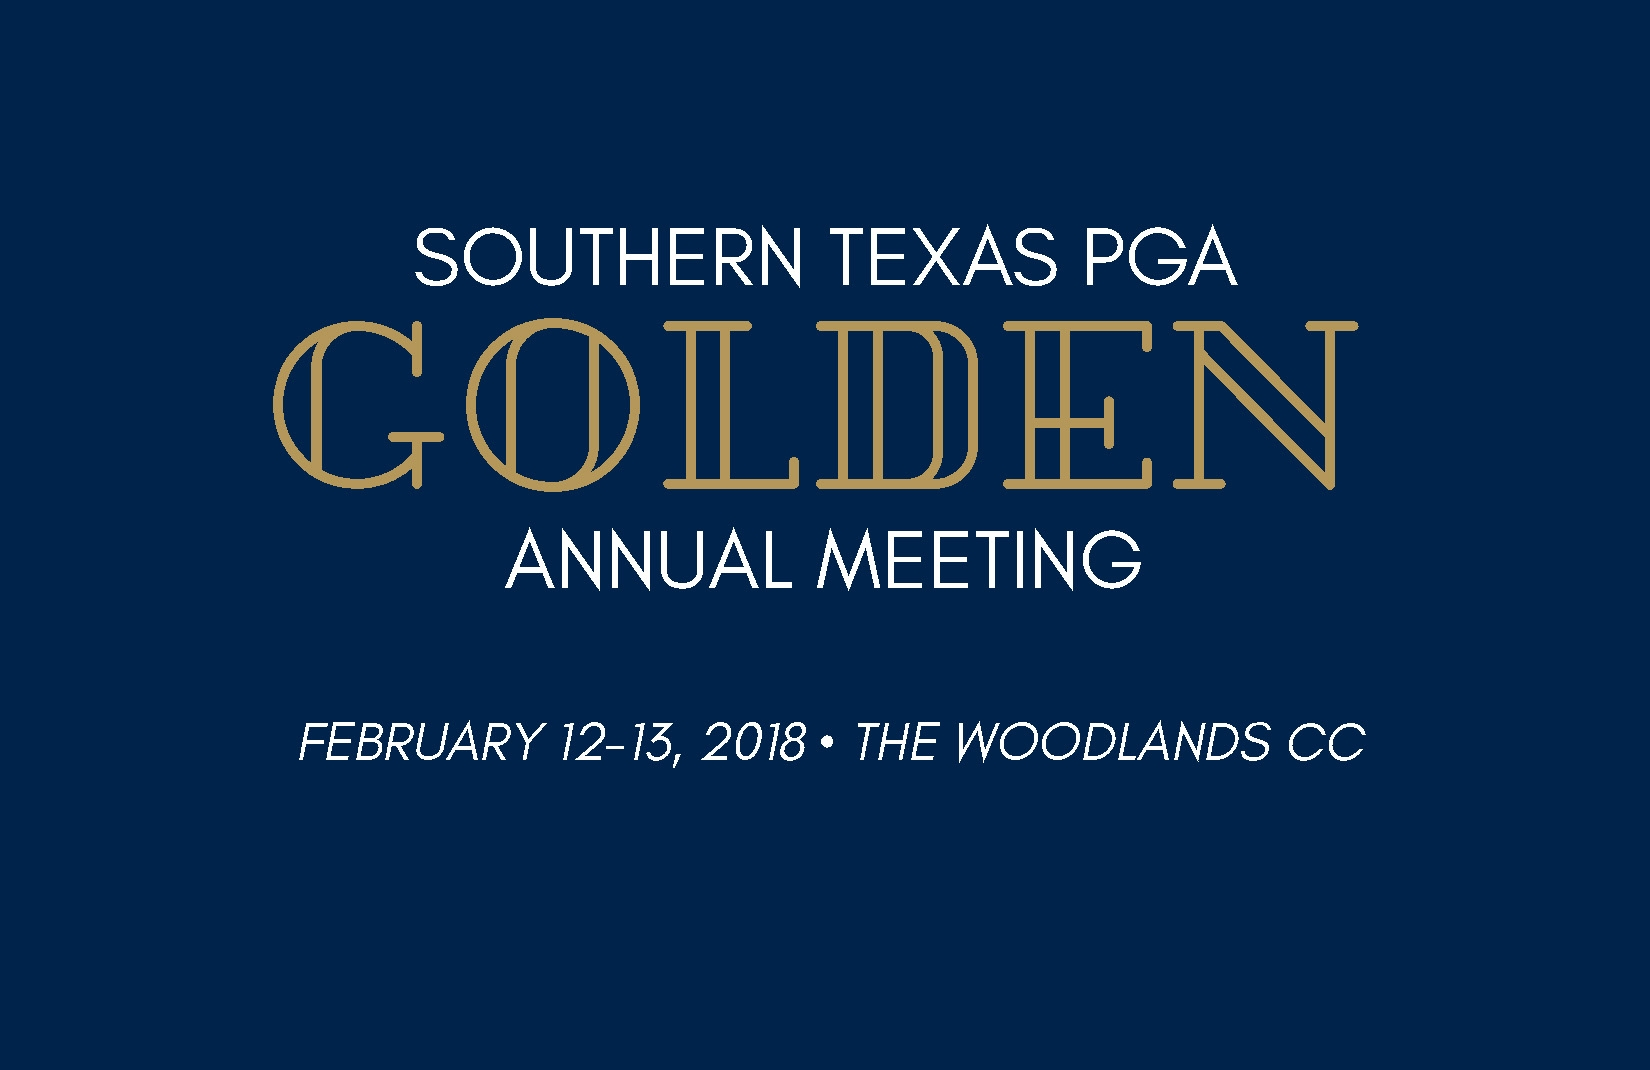 Registration is Now Open for the 2016 STPGA Annual Meeting